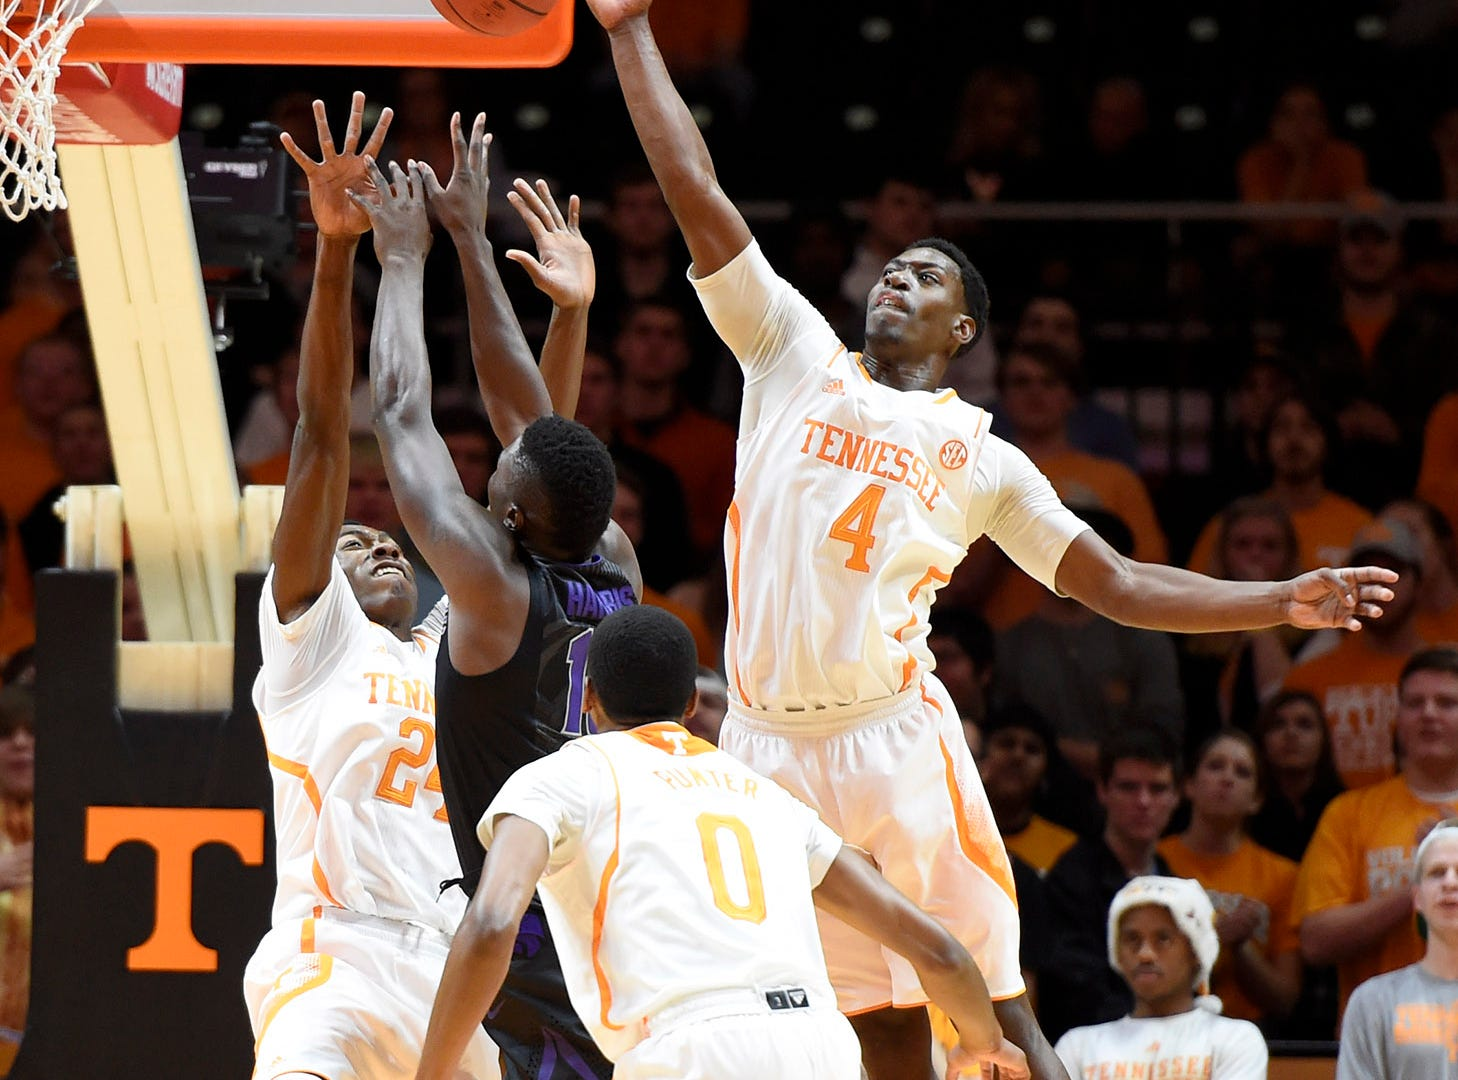 Tennessee forward Armani Moore (4) blocks a shot by Kansas State forward Malek Harris (10) during their NCAA college basketball game at Thompson-Boling Arena in Knoxville, Tenn., Saturday, Dec. 6, 2014.  Tennessee won 65-64.